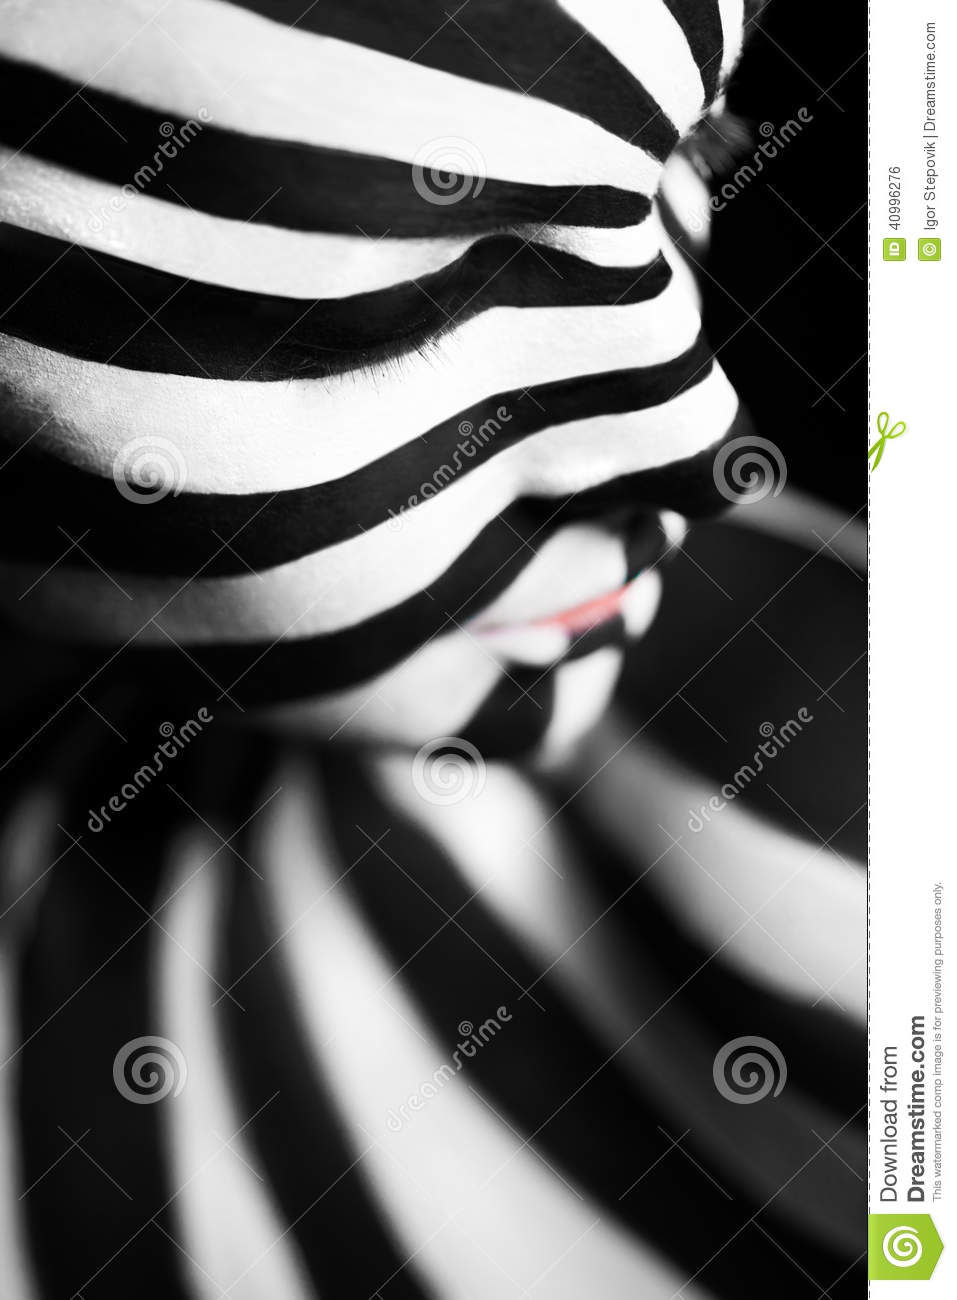 Spiral Bodyart On The Body Of A Young Girl Stock Photo Image Of Paint Creativity 40996276